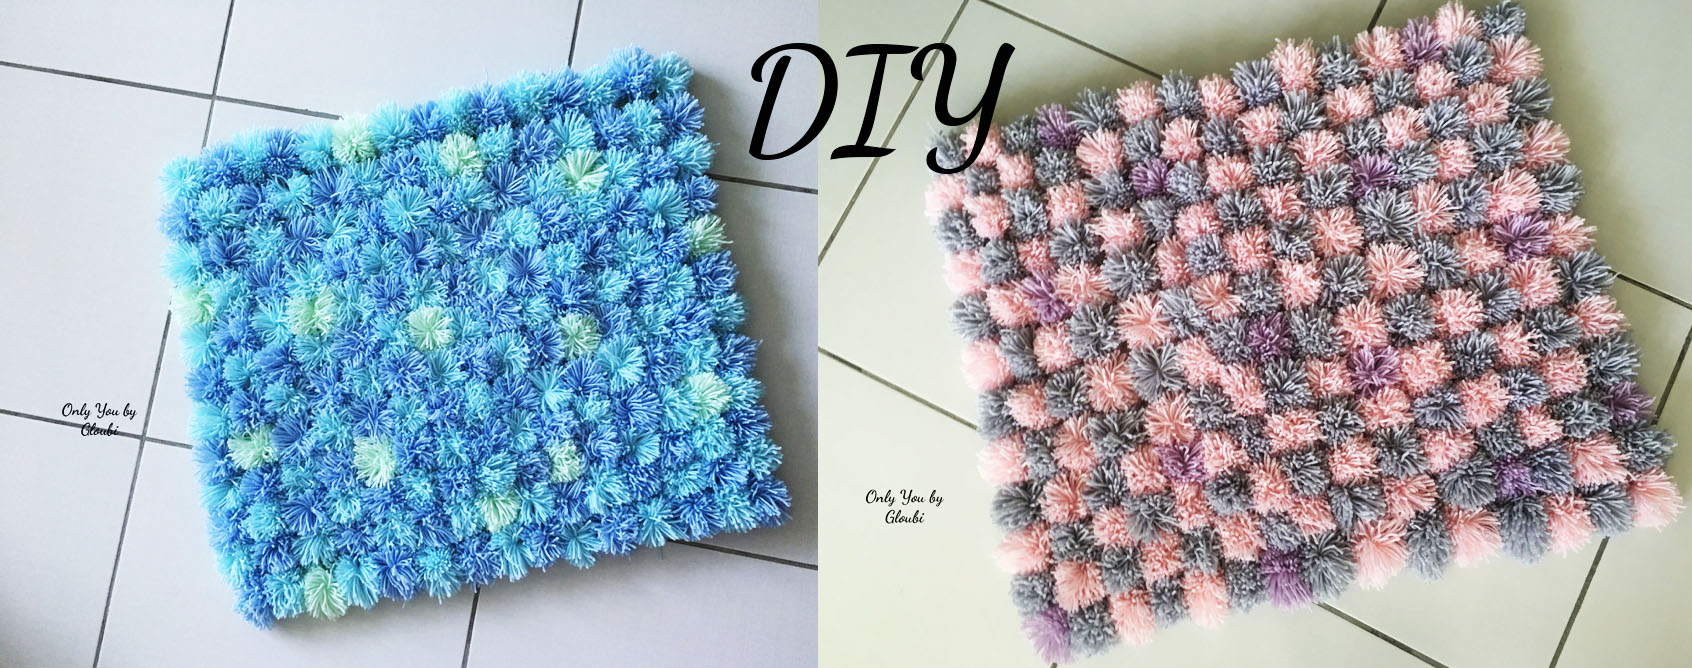 Diy Mon Tapis Pompons Only You By Gloubi